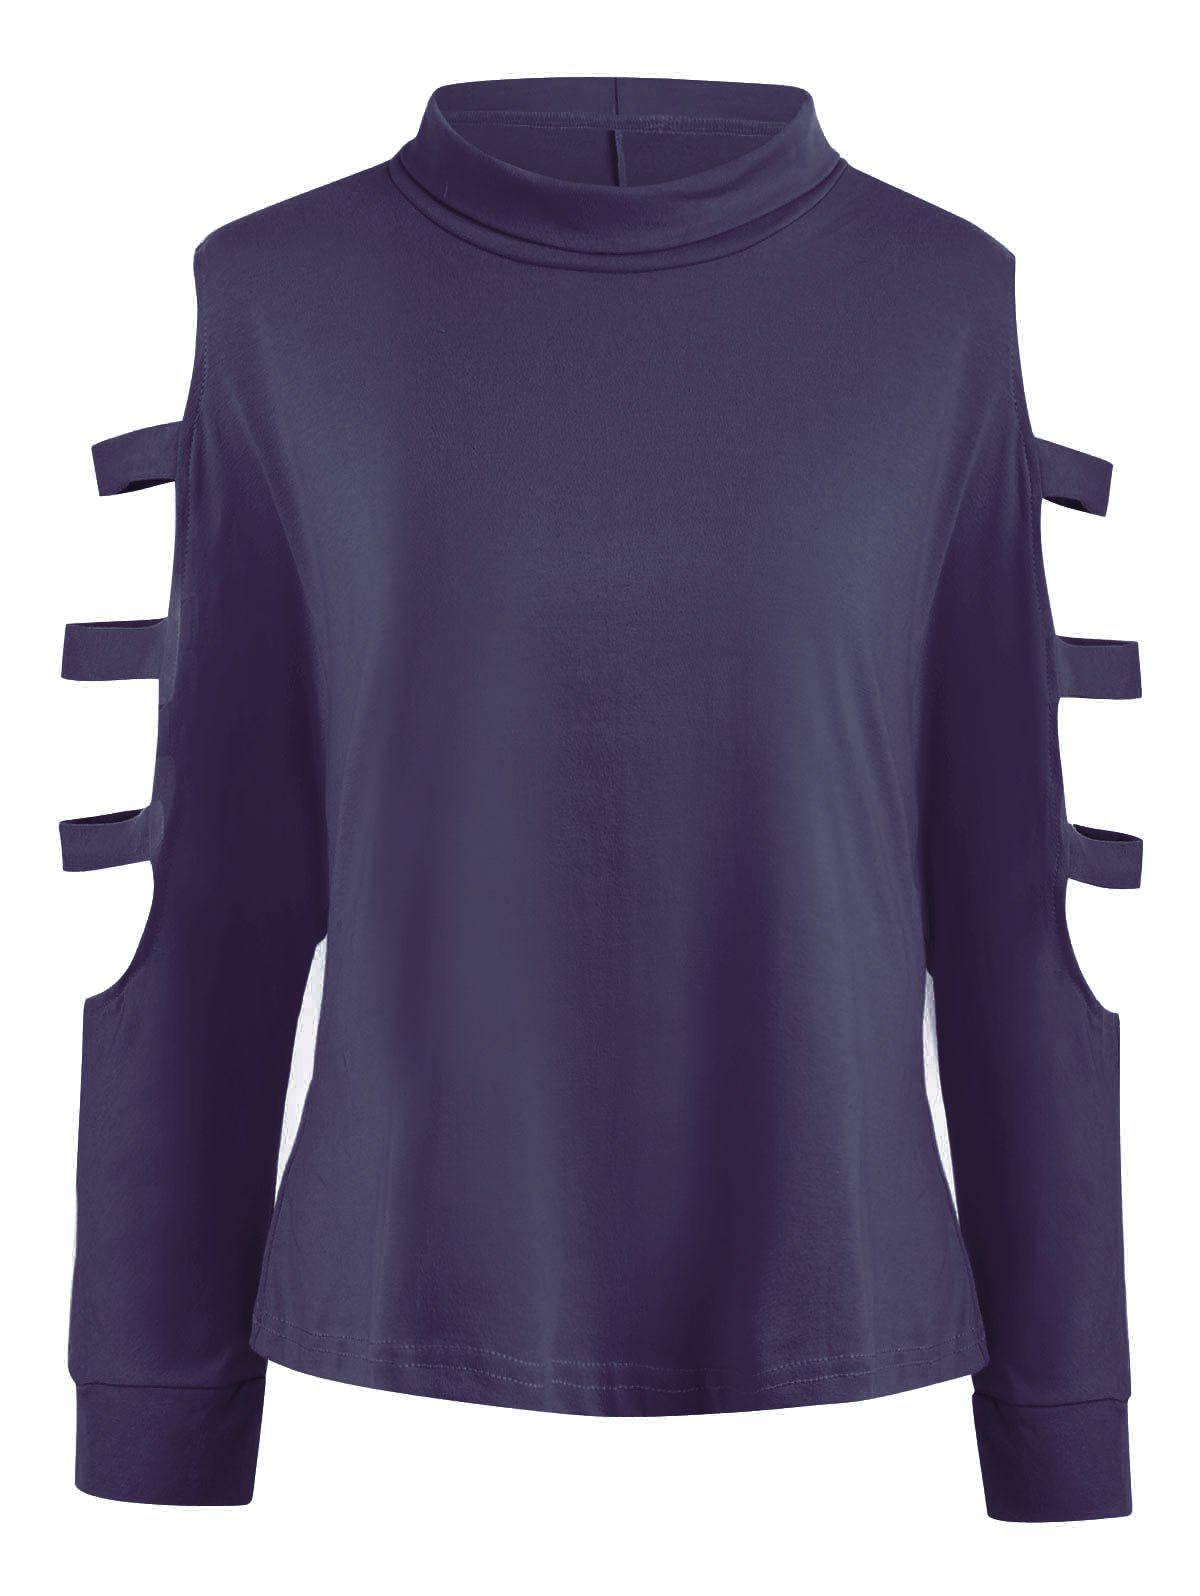 Plus Size Long Sleeve Cutout Shoulder T-shirtWOMEN<br><br>Size: 6XL; Color: PURPLISH BLUE; Material: Cotton Blends,Polyester; Shirt Length: Long; Sleeve Length: Full; Collar: Funnel Collar; Style: Fashion; Season: Fall,Winter; Sleeve Type: Cold Shoulder; Embellishment: Hollow Out; Pattern Type: Solid; Weight: 0.2500kg; Package Contents: 1 x Tee;